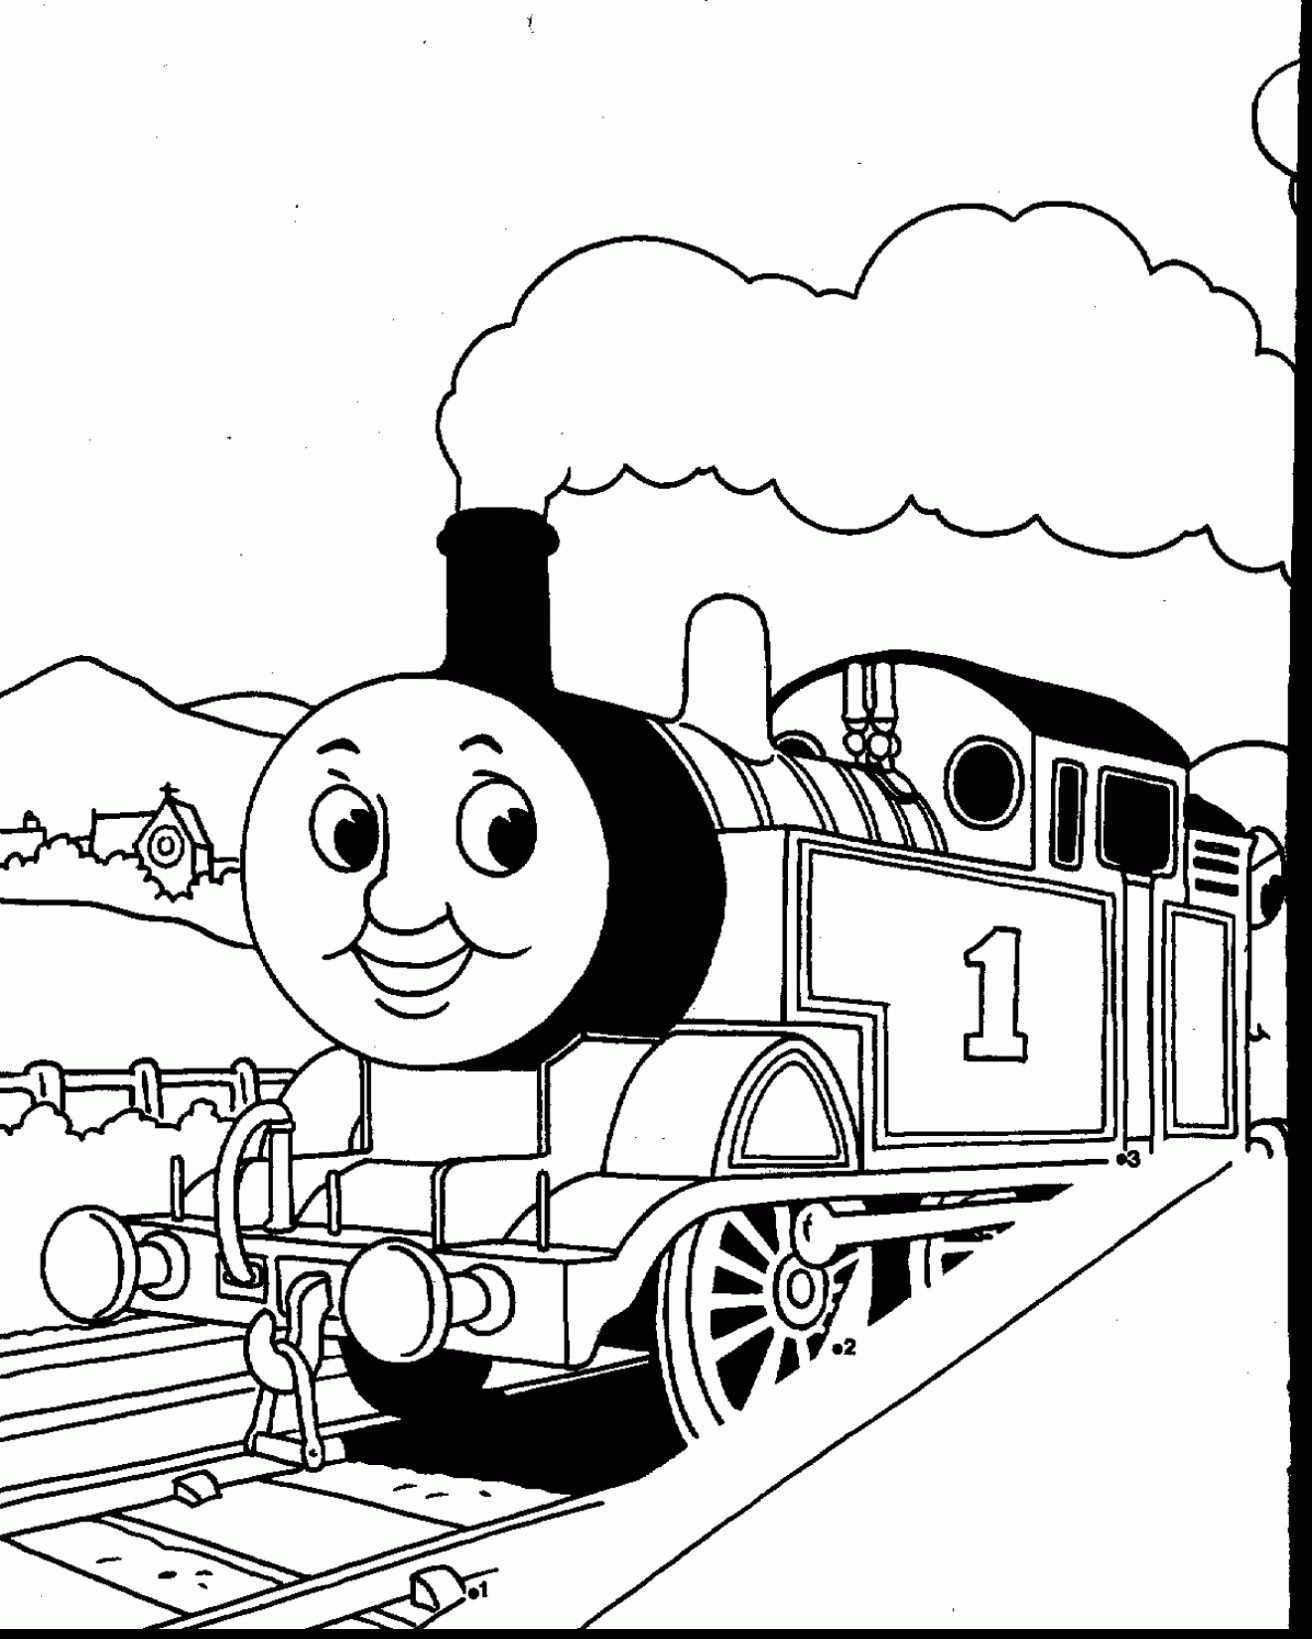 Coloring Pages Thomas the Train  to Print 4r - Save it to your computer